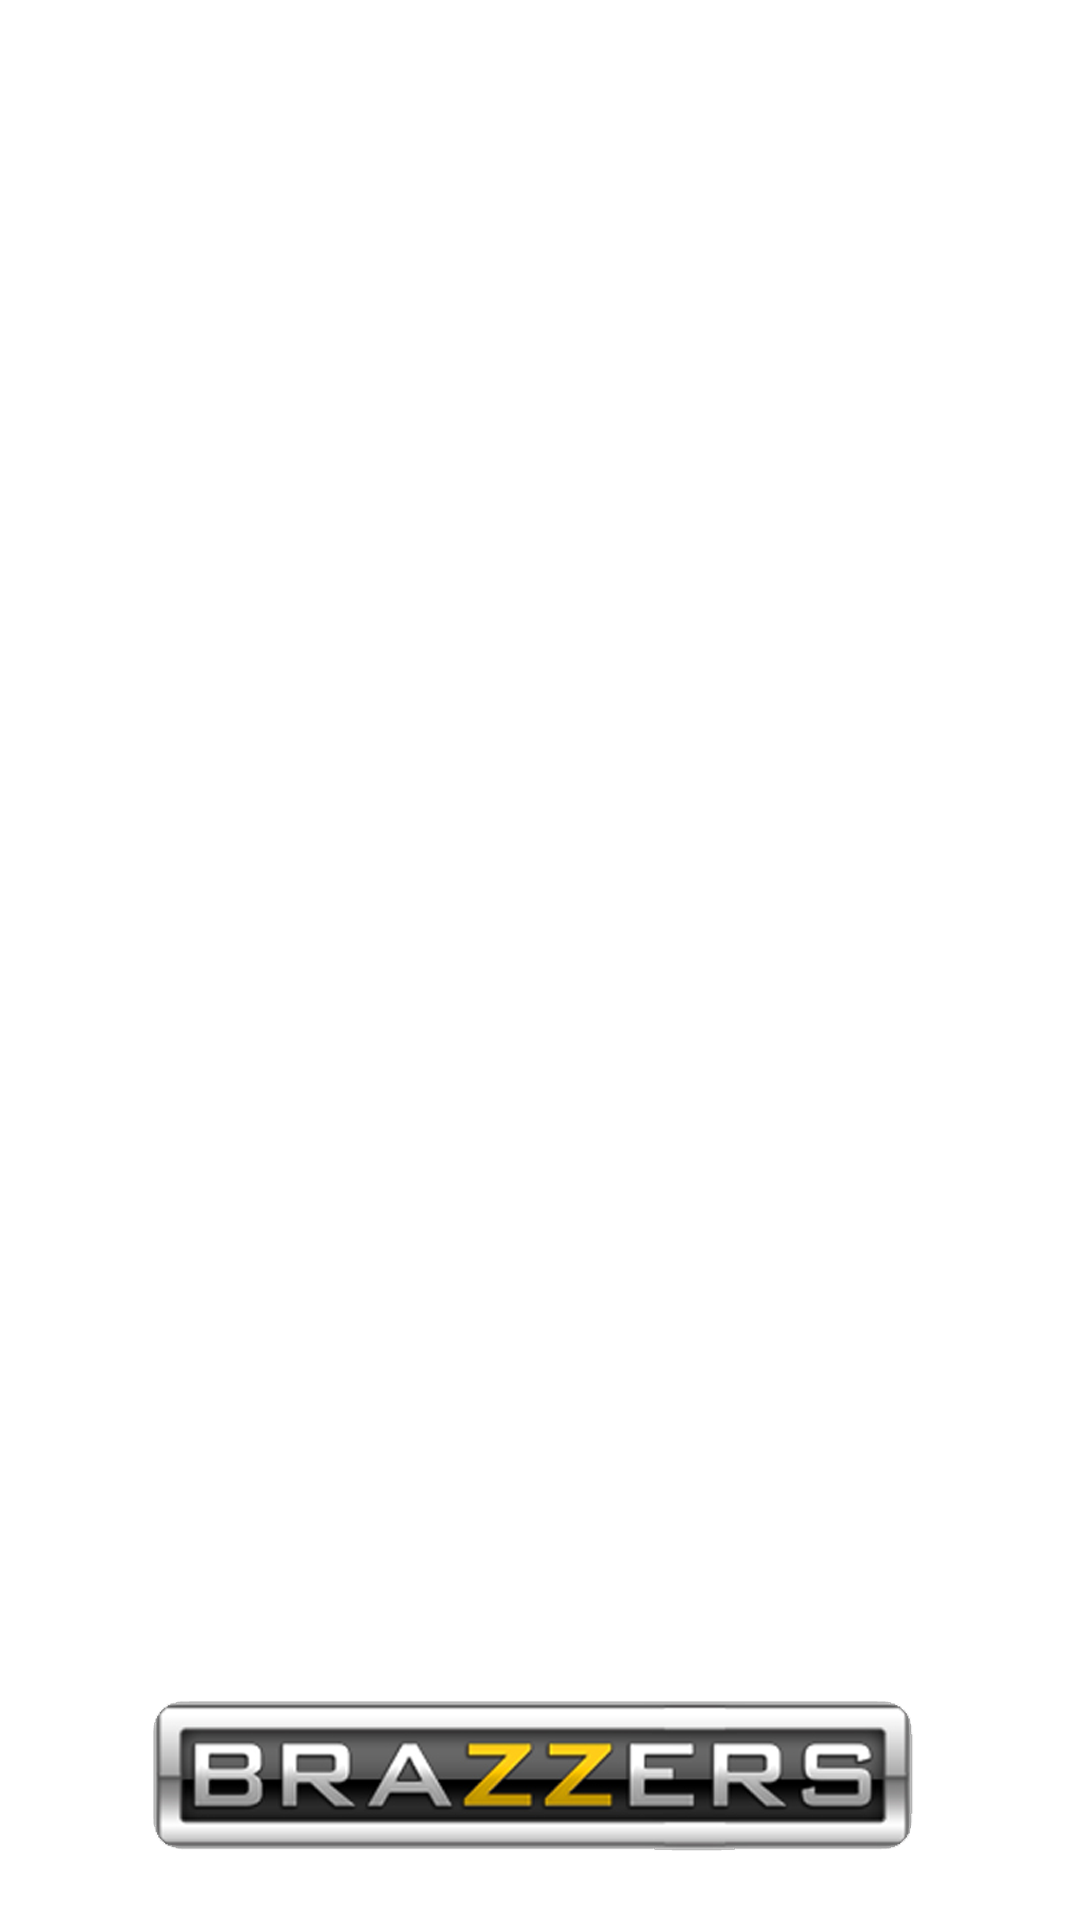 Brazzers logo png. Filter imgur